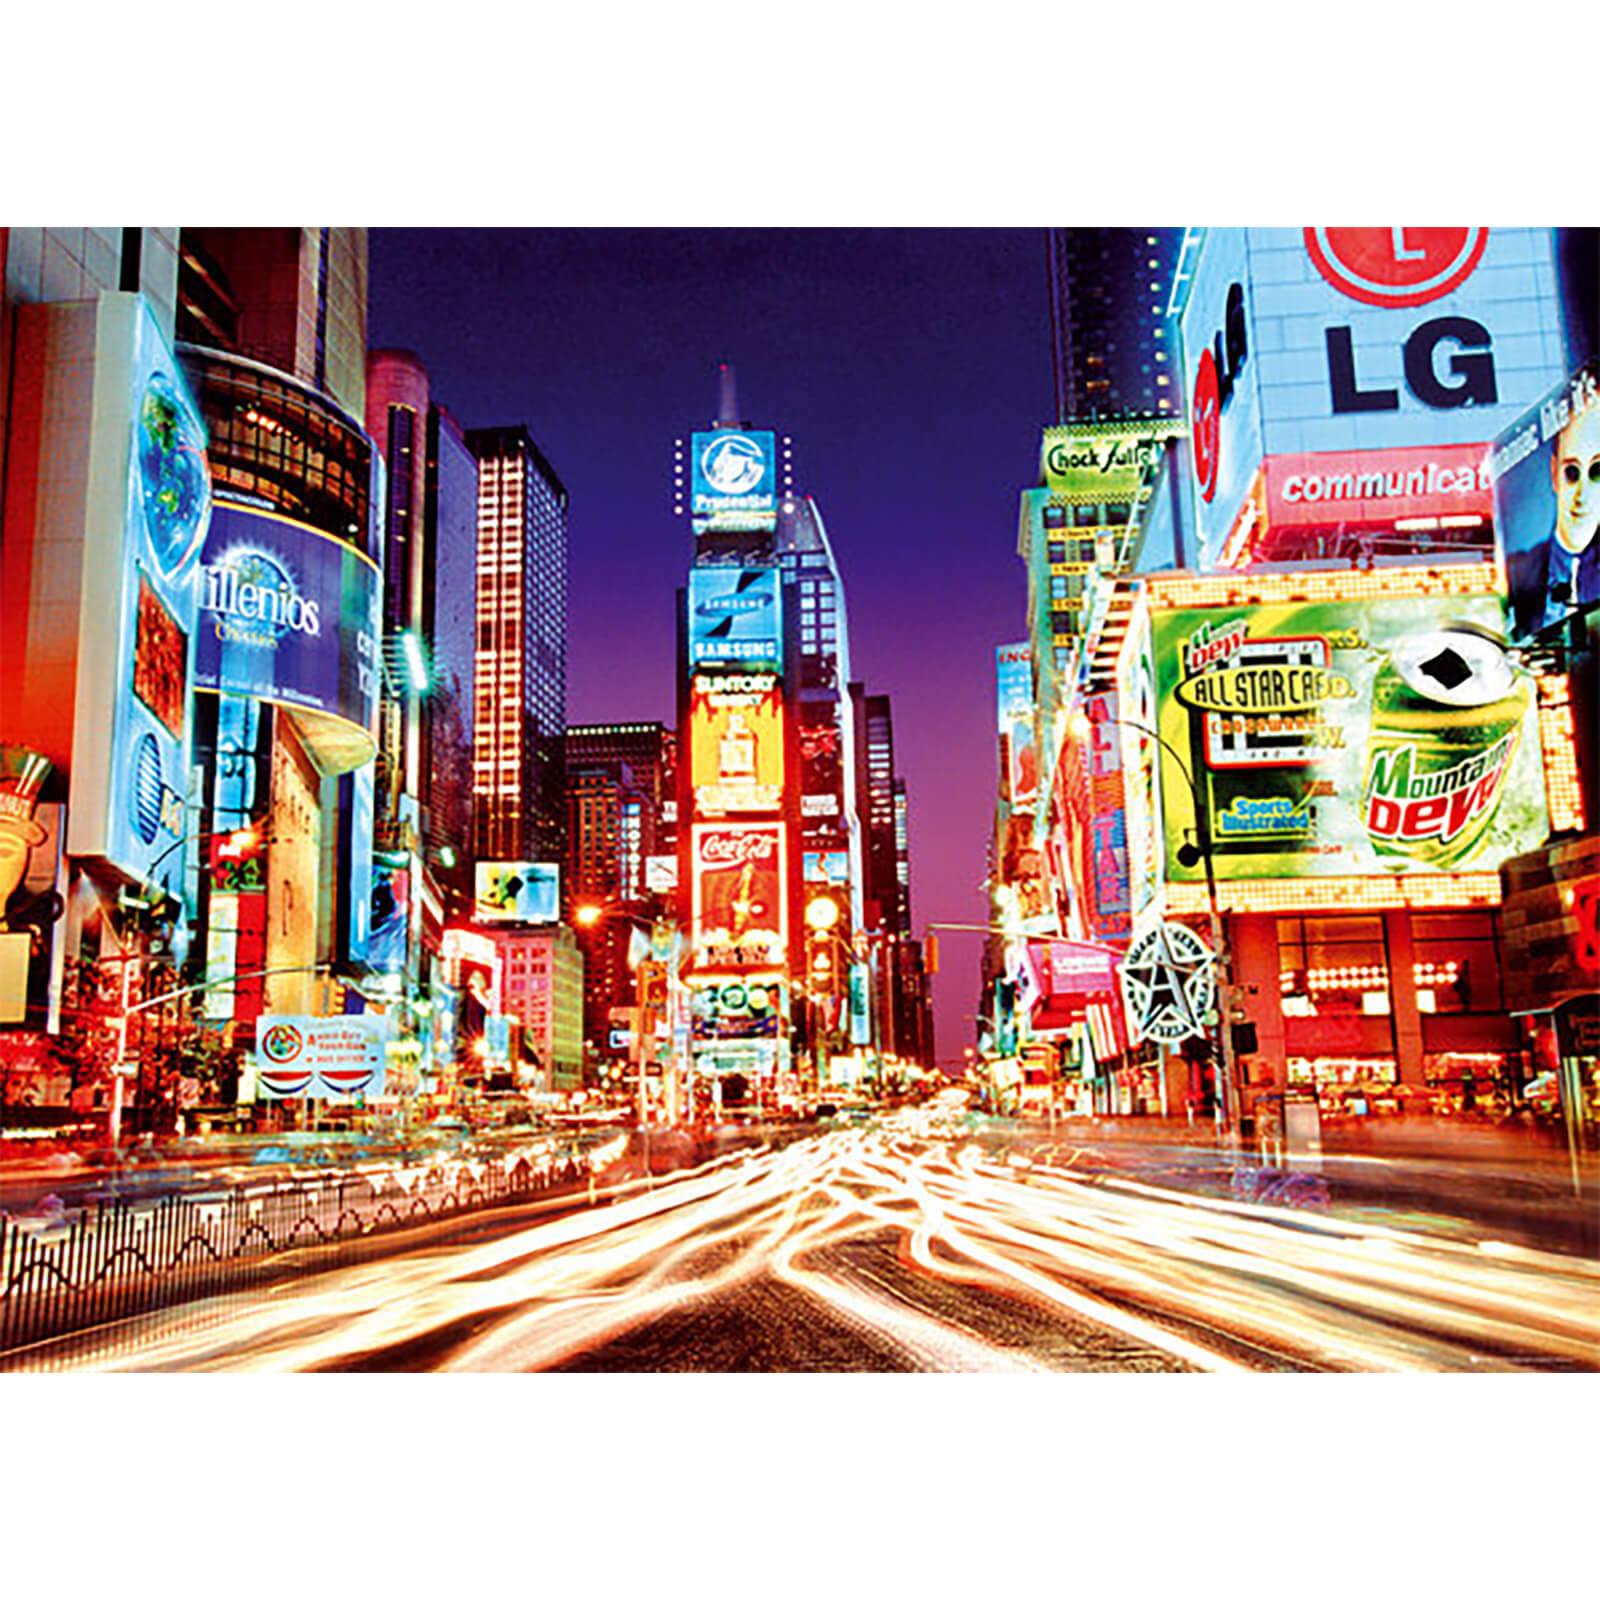 Times Square - Giant Poster - 100 x 140cm